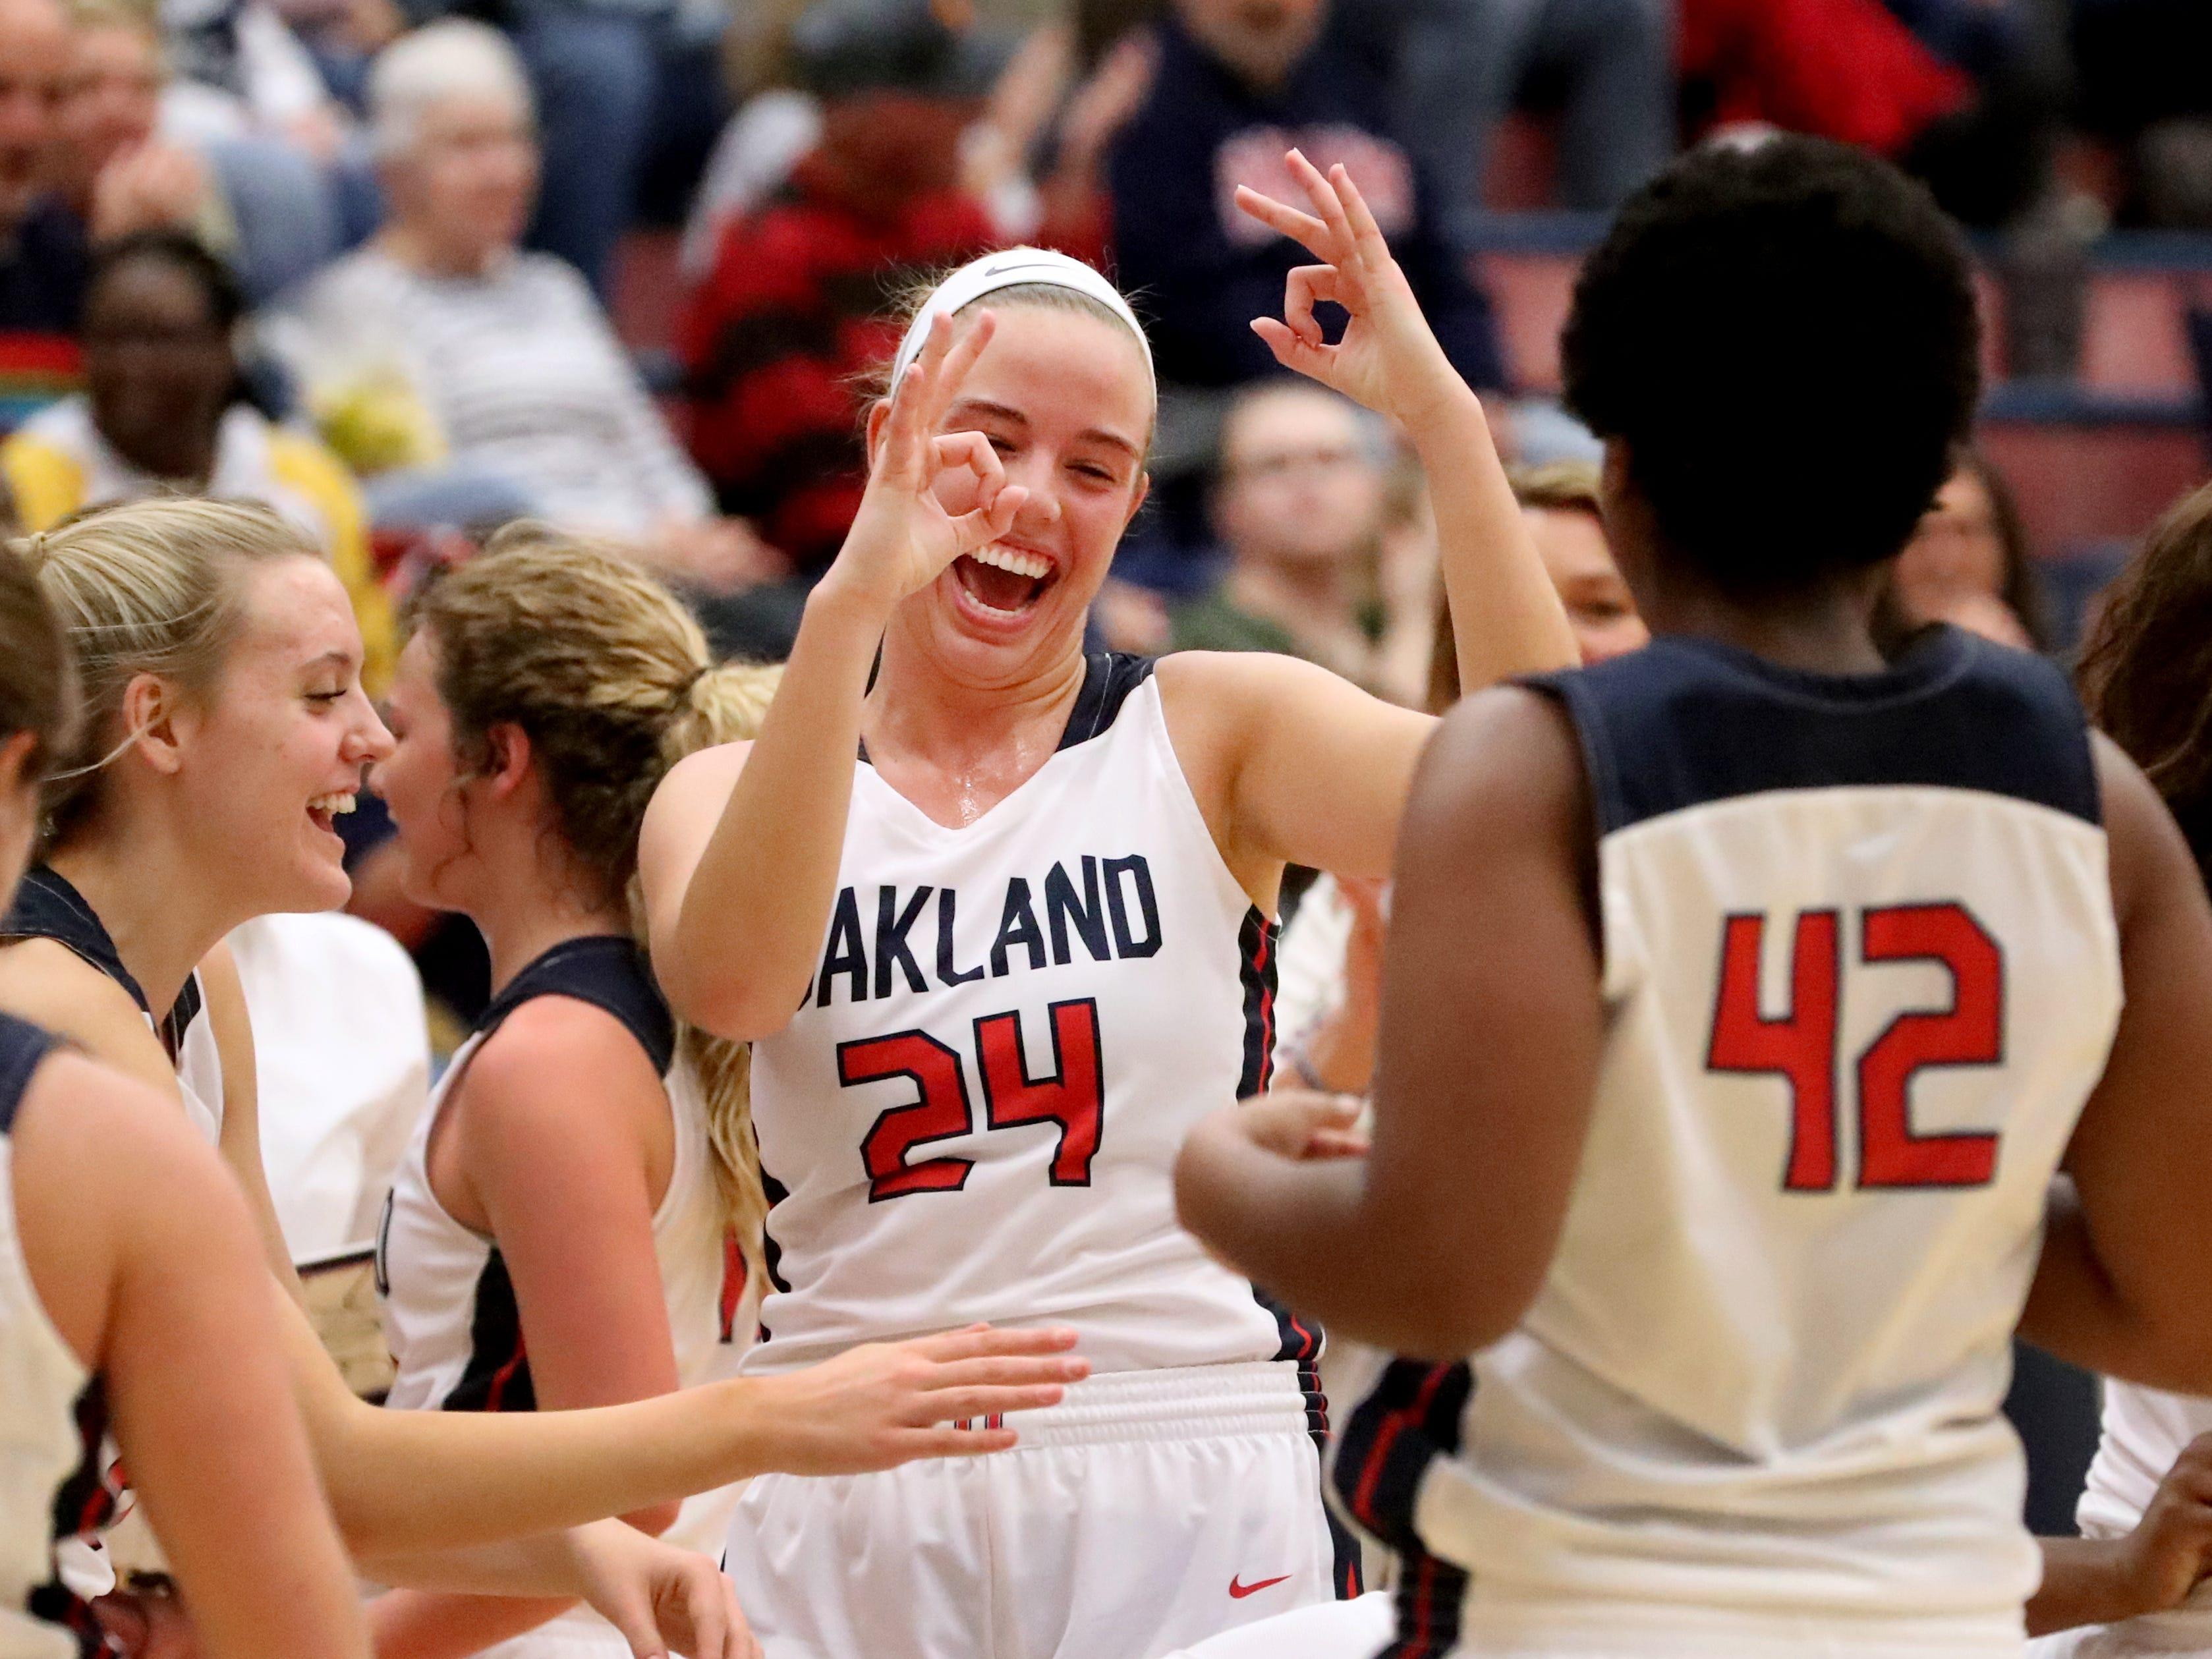 Oakland's Olivia Perry (24) celebrates a 3 point shot at the 3rd quarter buzzer made by Oakland's Erykah Collier (32) during the game against the Siegel at Oakland on Tuesday, Dec.. 4, 2018.